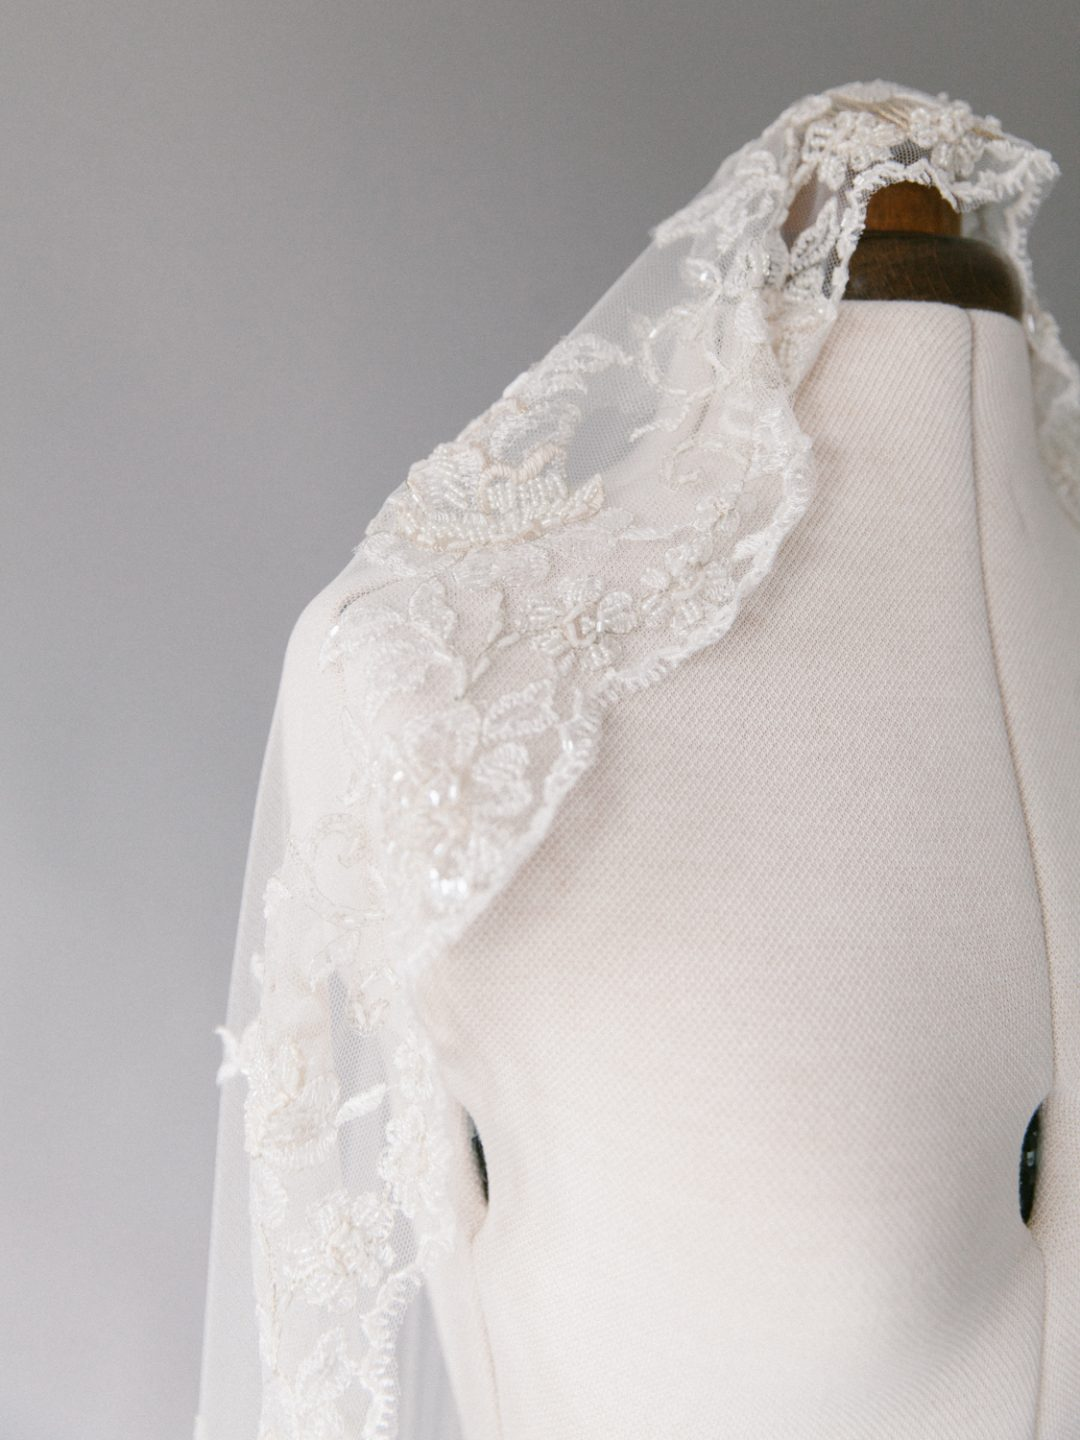 Champagne Lace Mantilla Veil - Style 711 - SIBO Designs www.sibodesigns.com